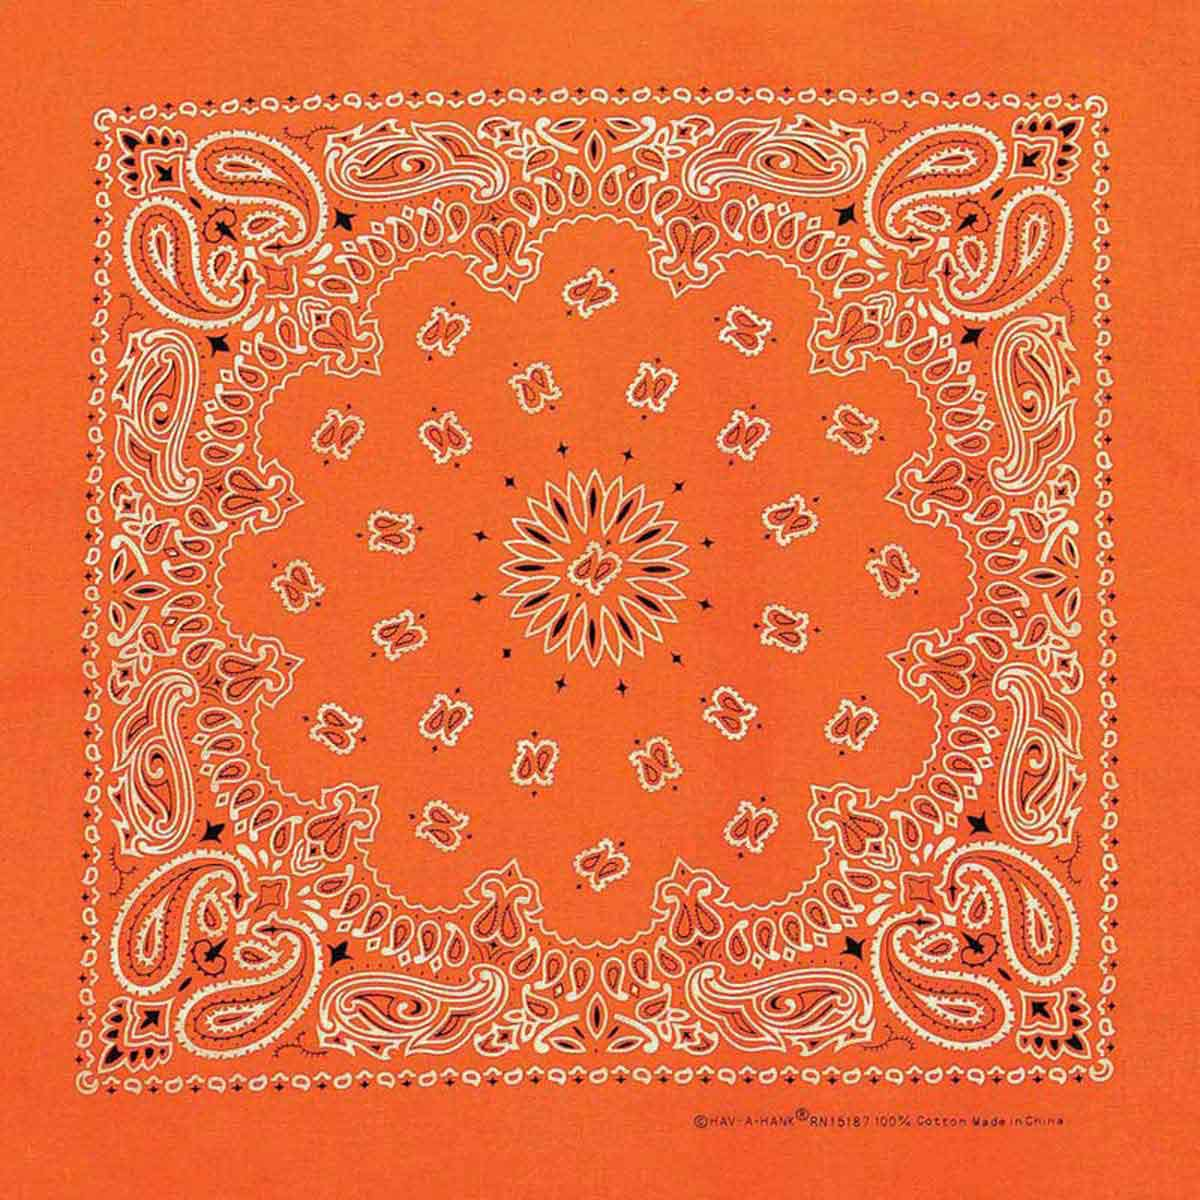 Neon Orange Paisley Dog Bandannas for Dog Grooming